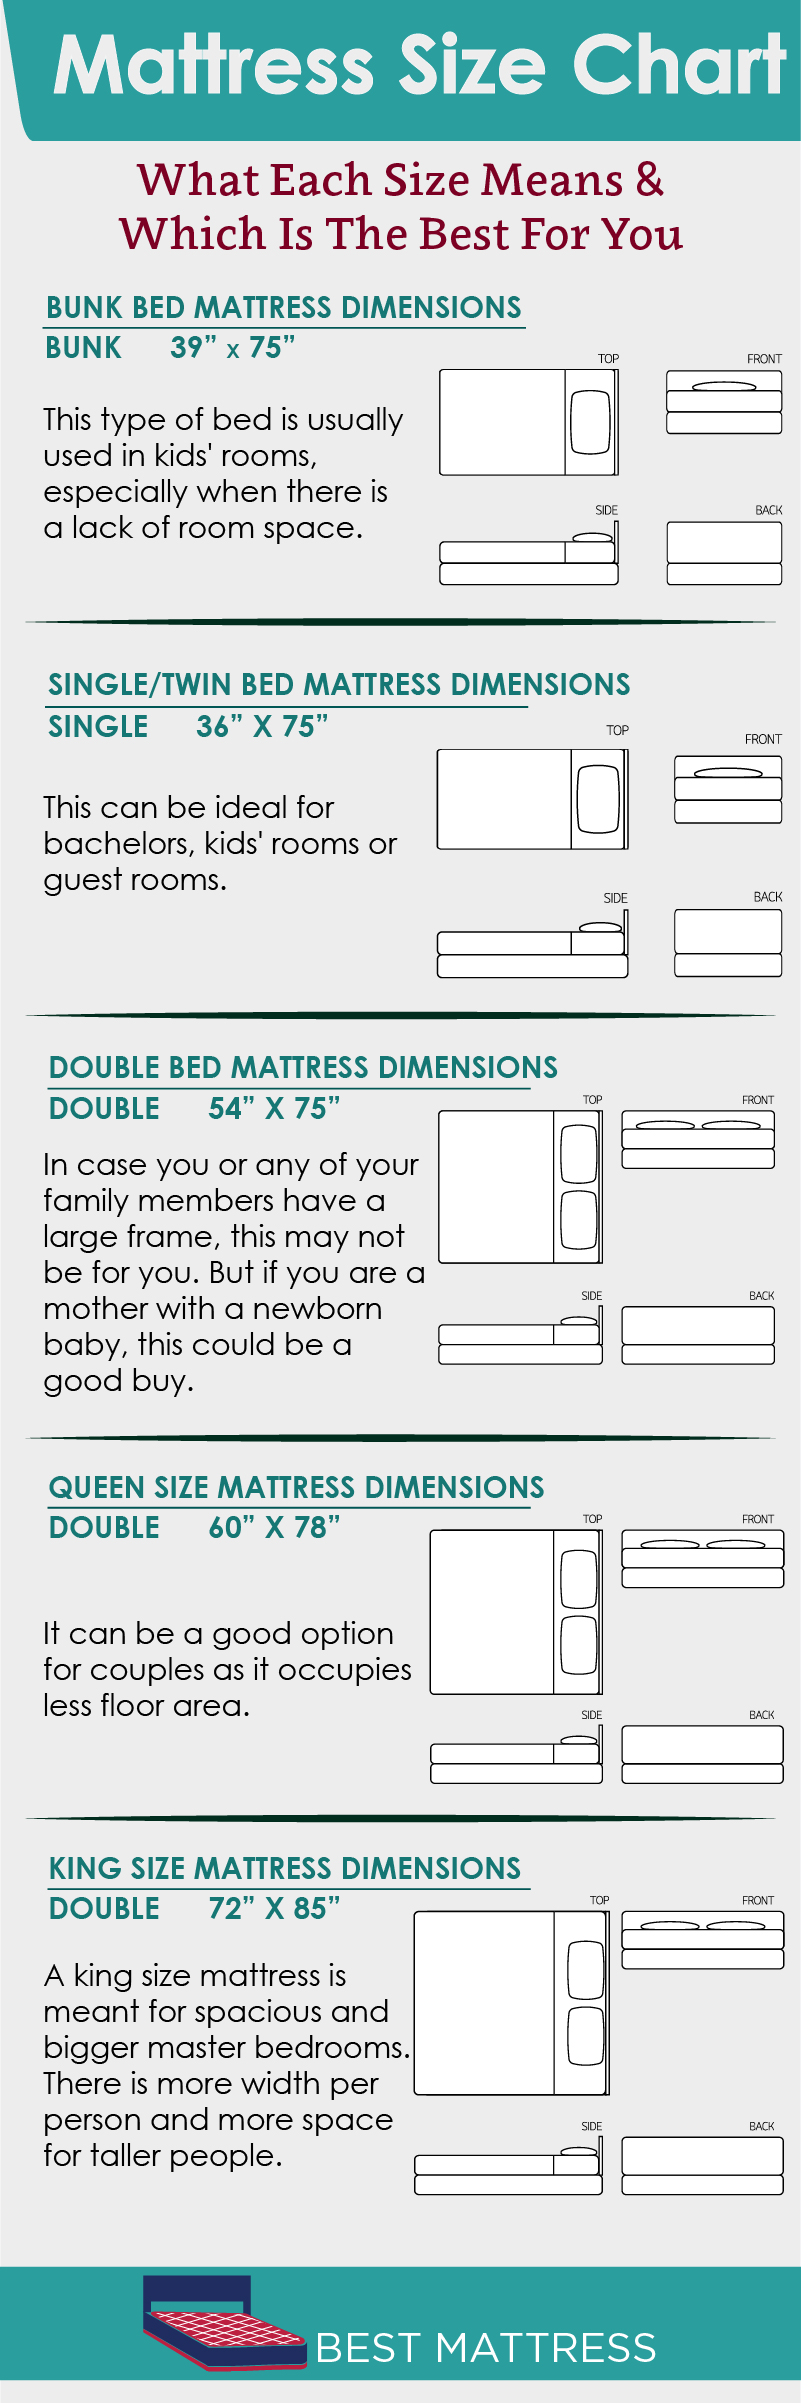 Gorgeous Mattress Size Mattress Size Chart King Or Queen What Do Y King Vs Queen Bed Usa King Vs Queen Bed Size houzz 01 King Vs Queen Bed